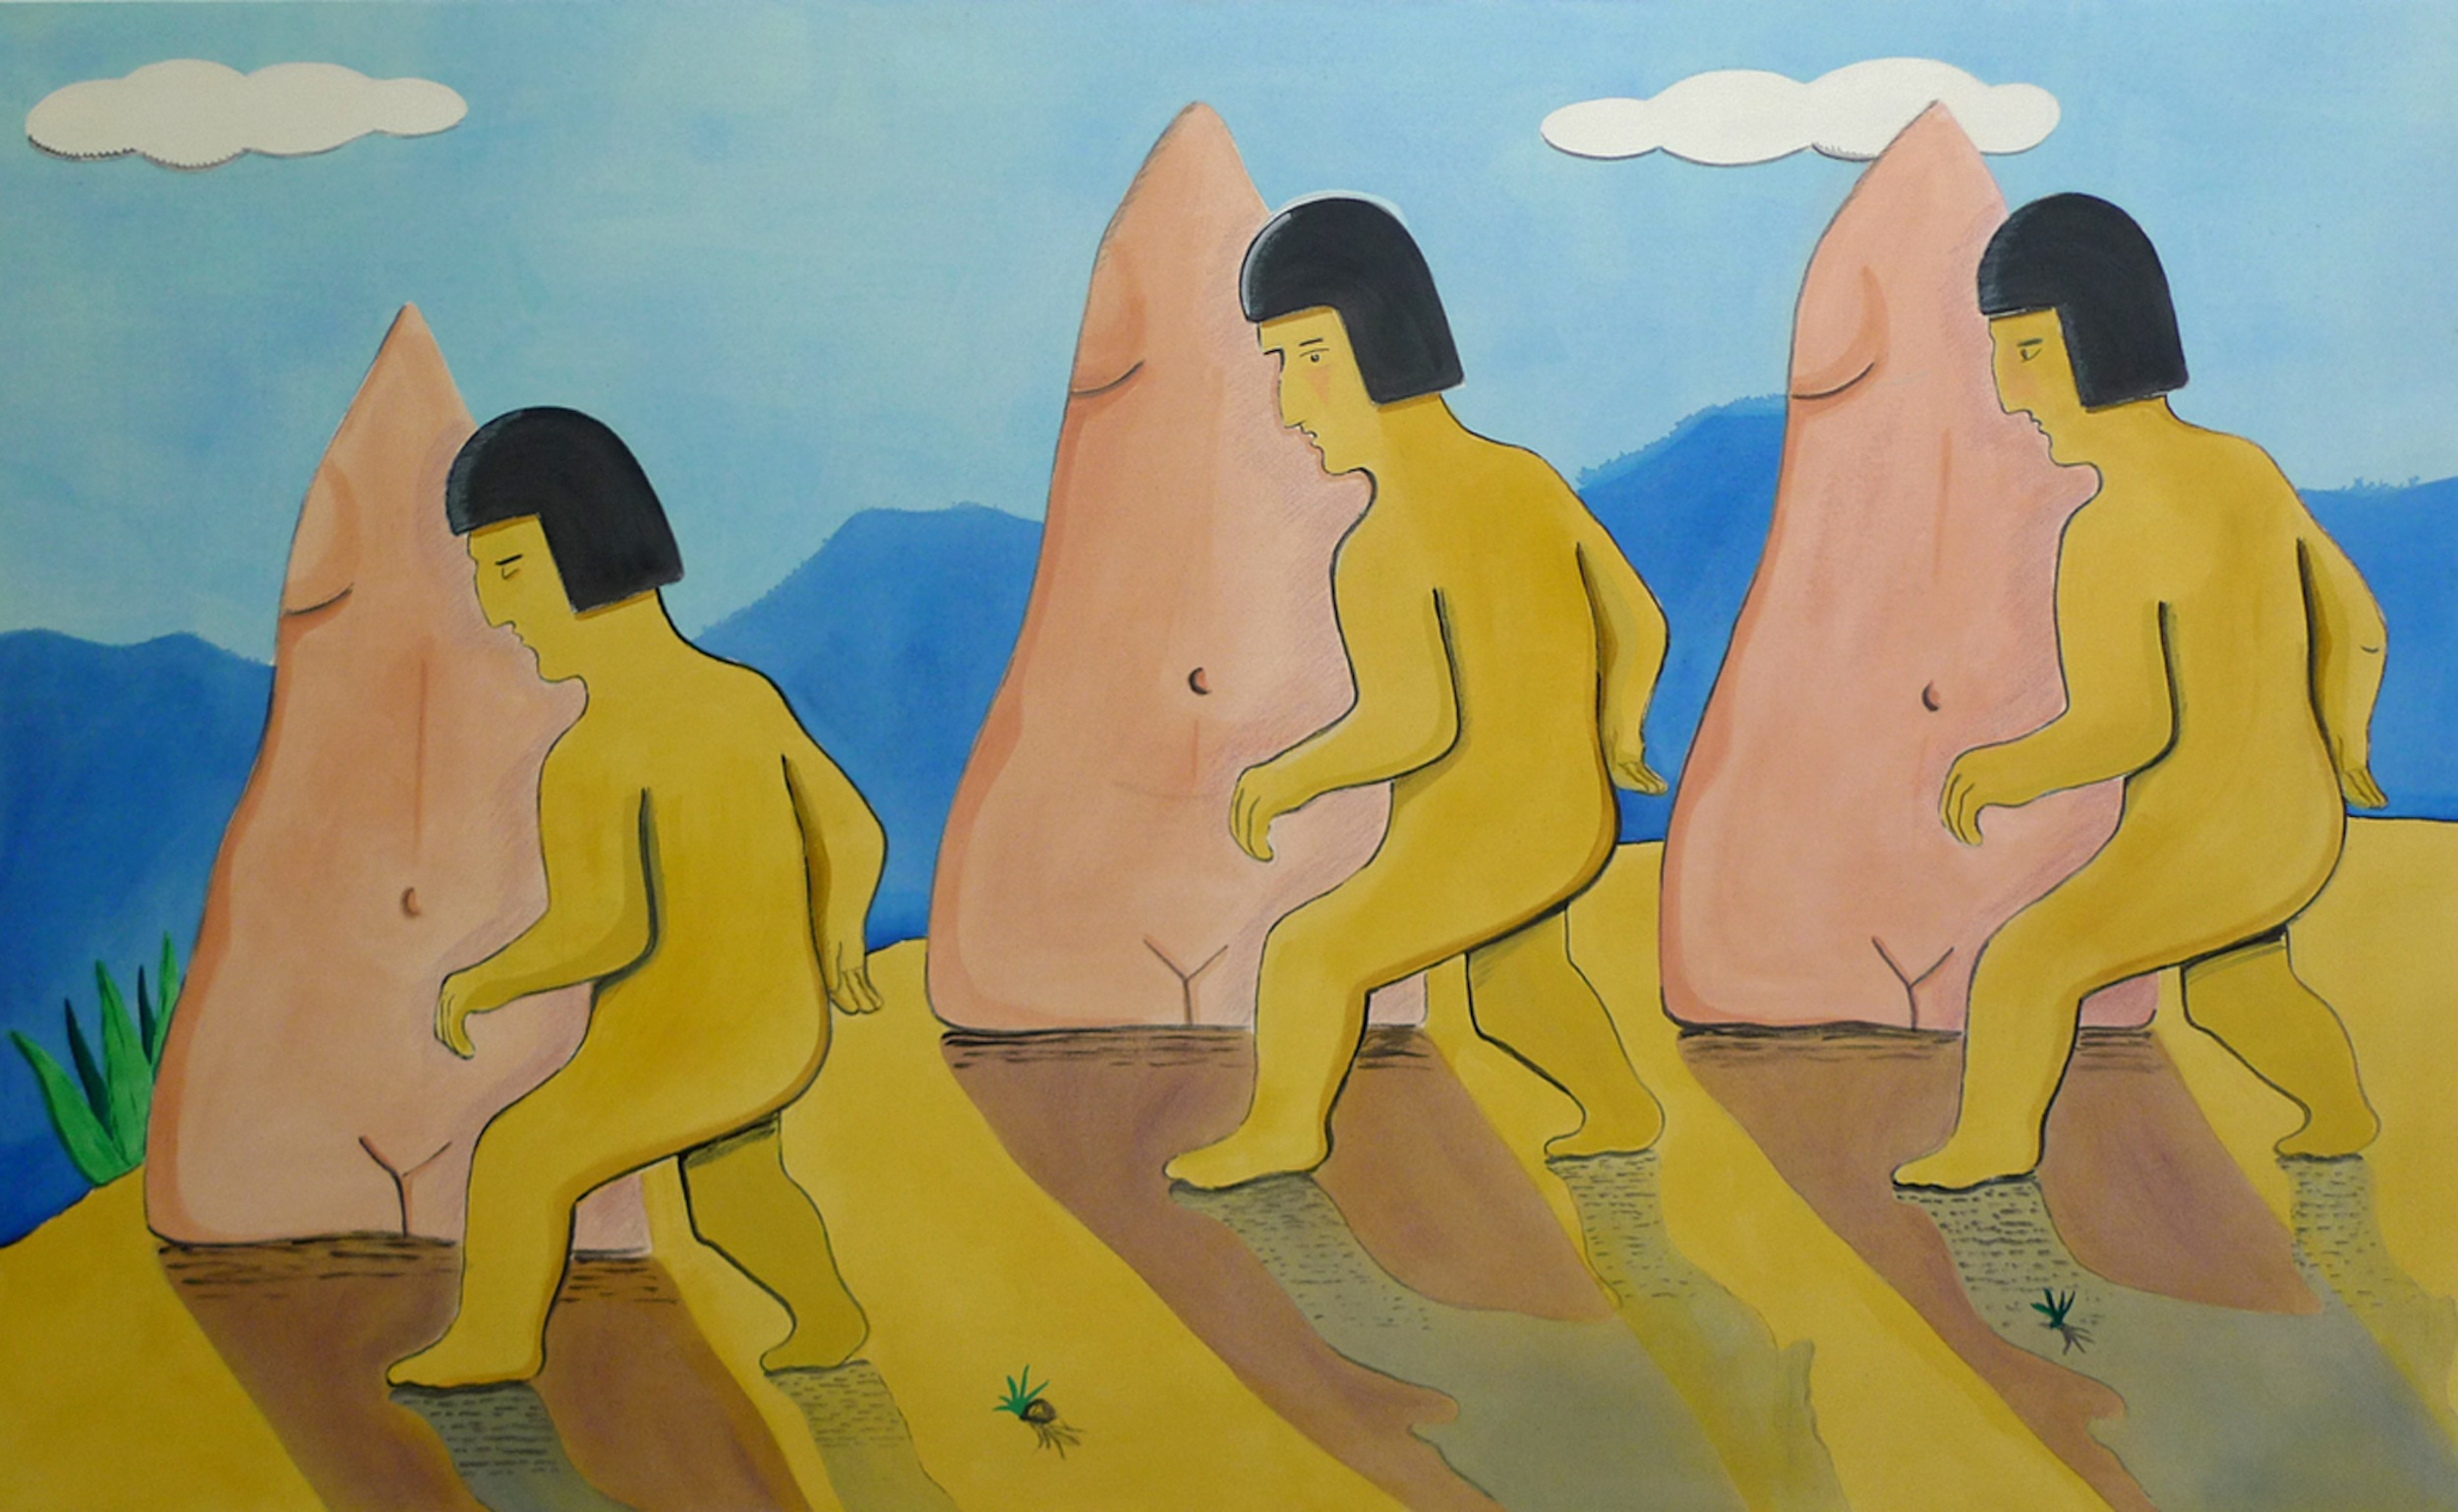 Torsos in the Andes  2014 Acrylic on Canvas, 119 x 193 cm